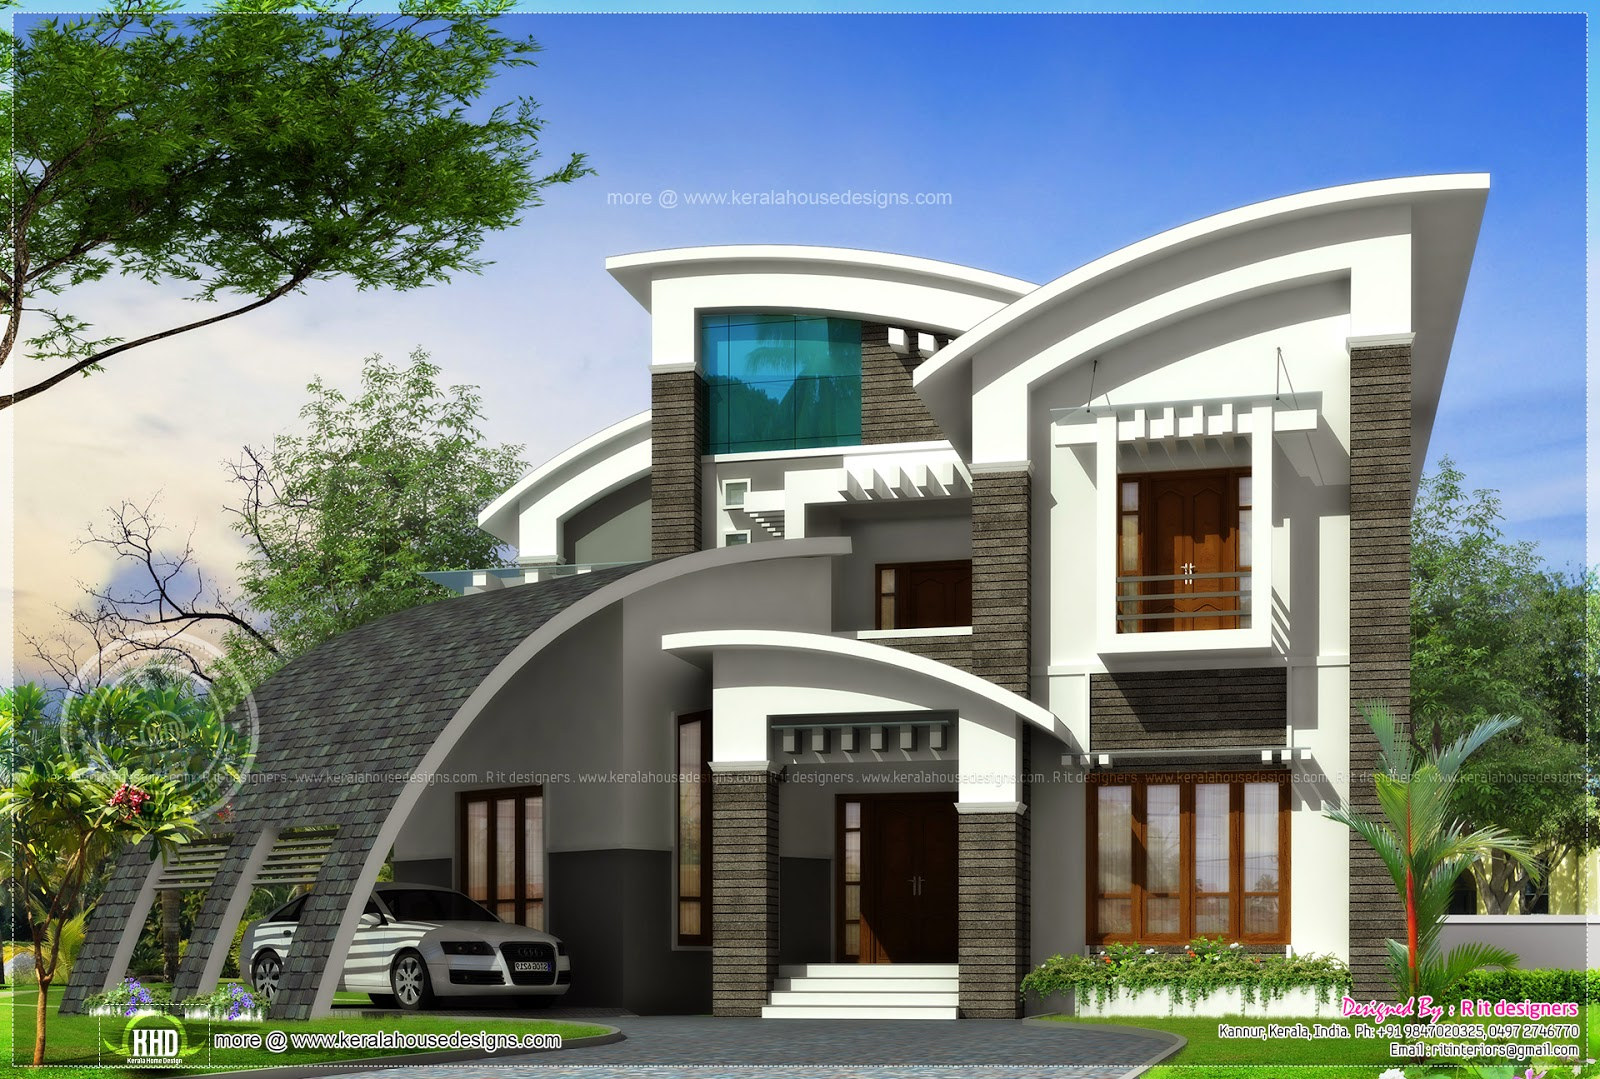 Super luxury ultra modern house design kerala home for Luxury mansion plans